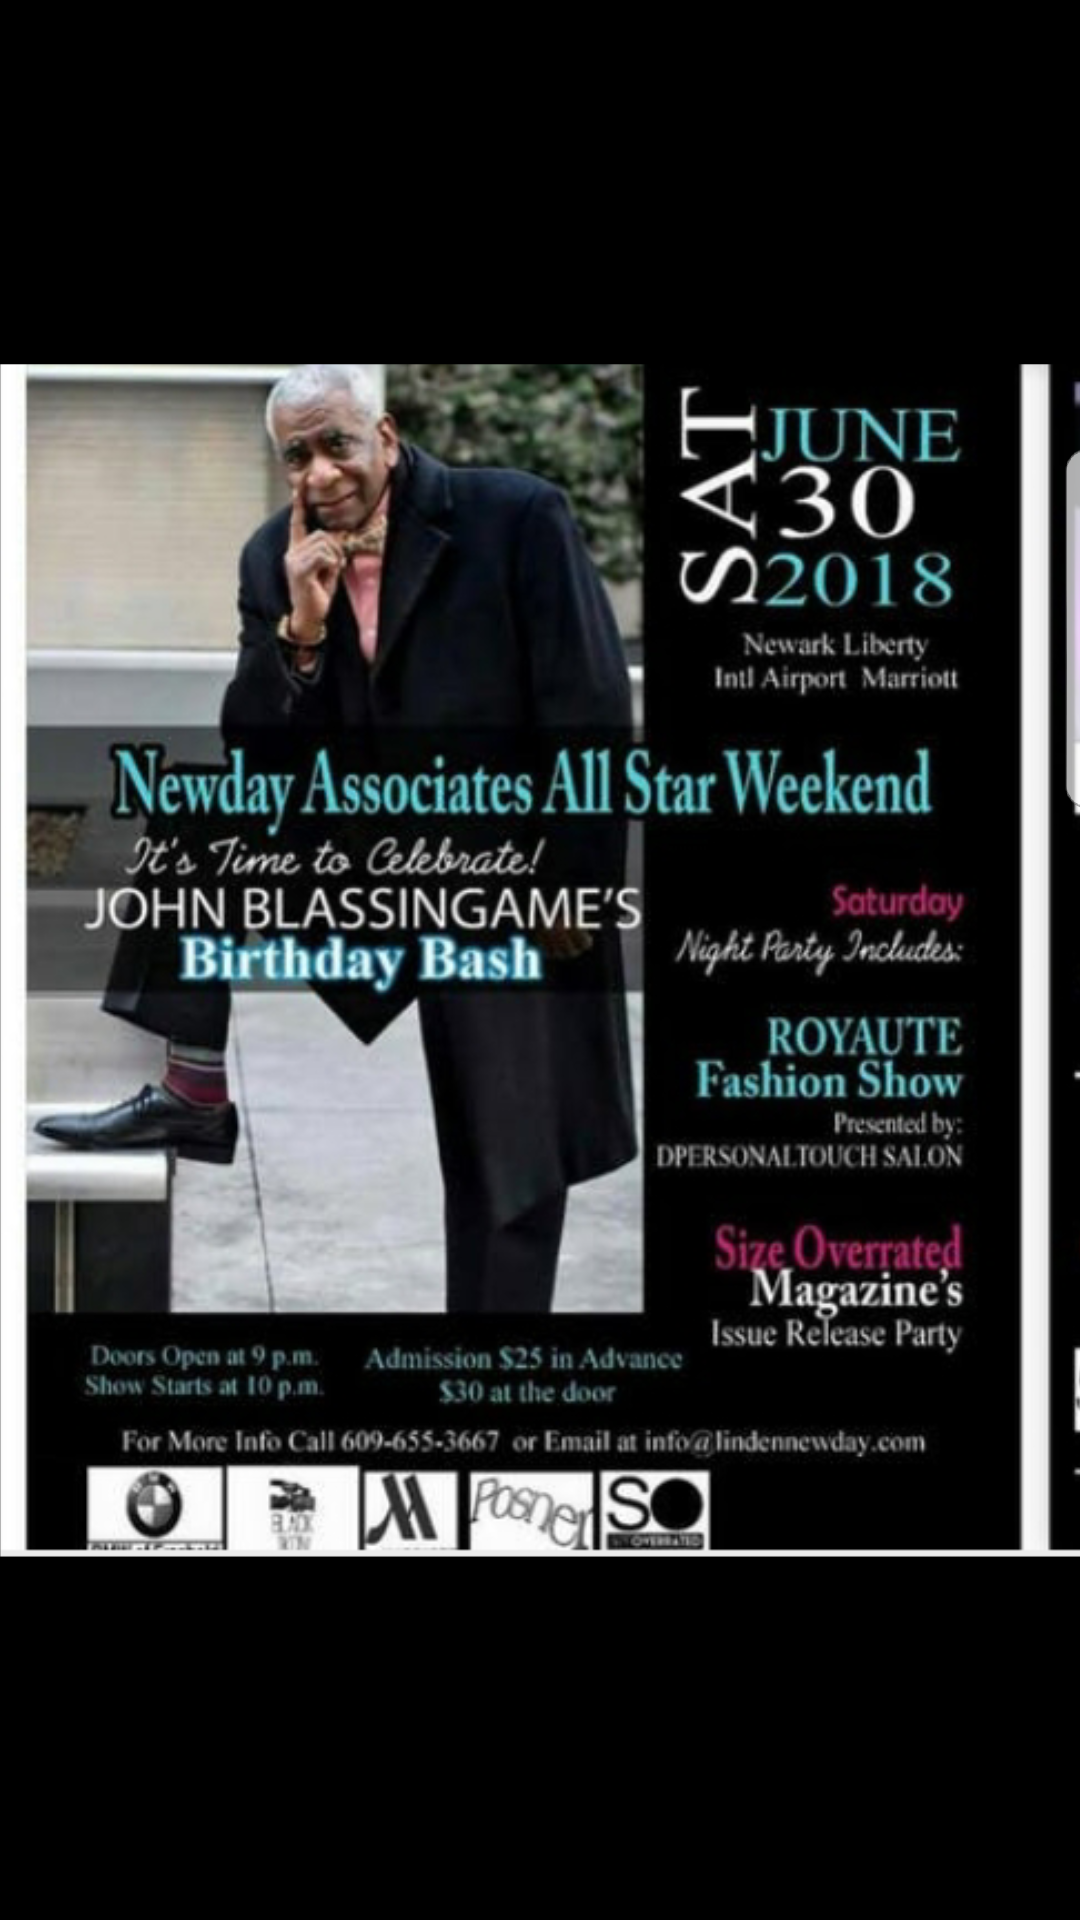 All Star Fashion Weekend June 29 - 31